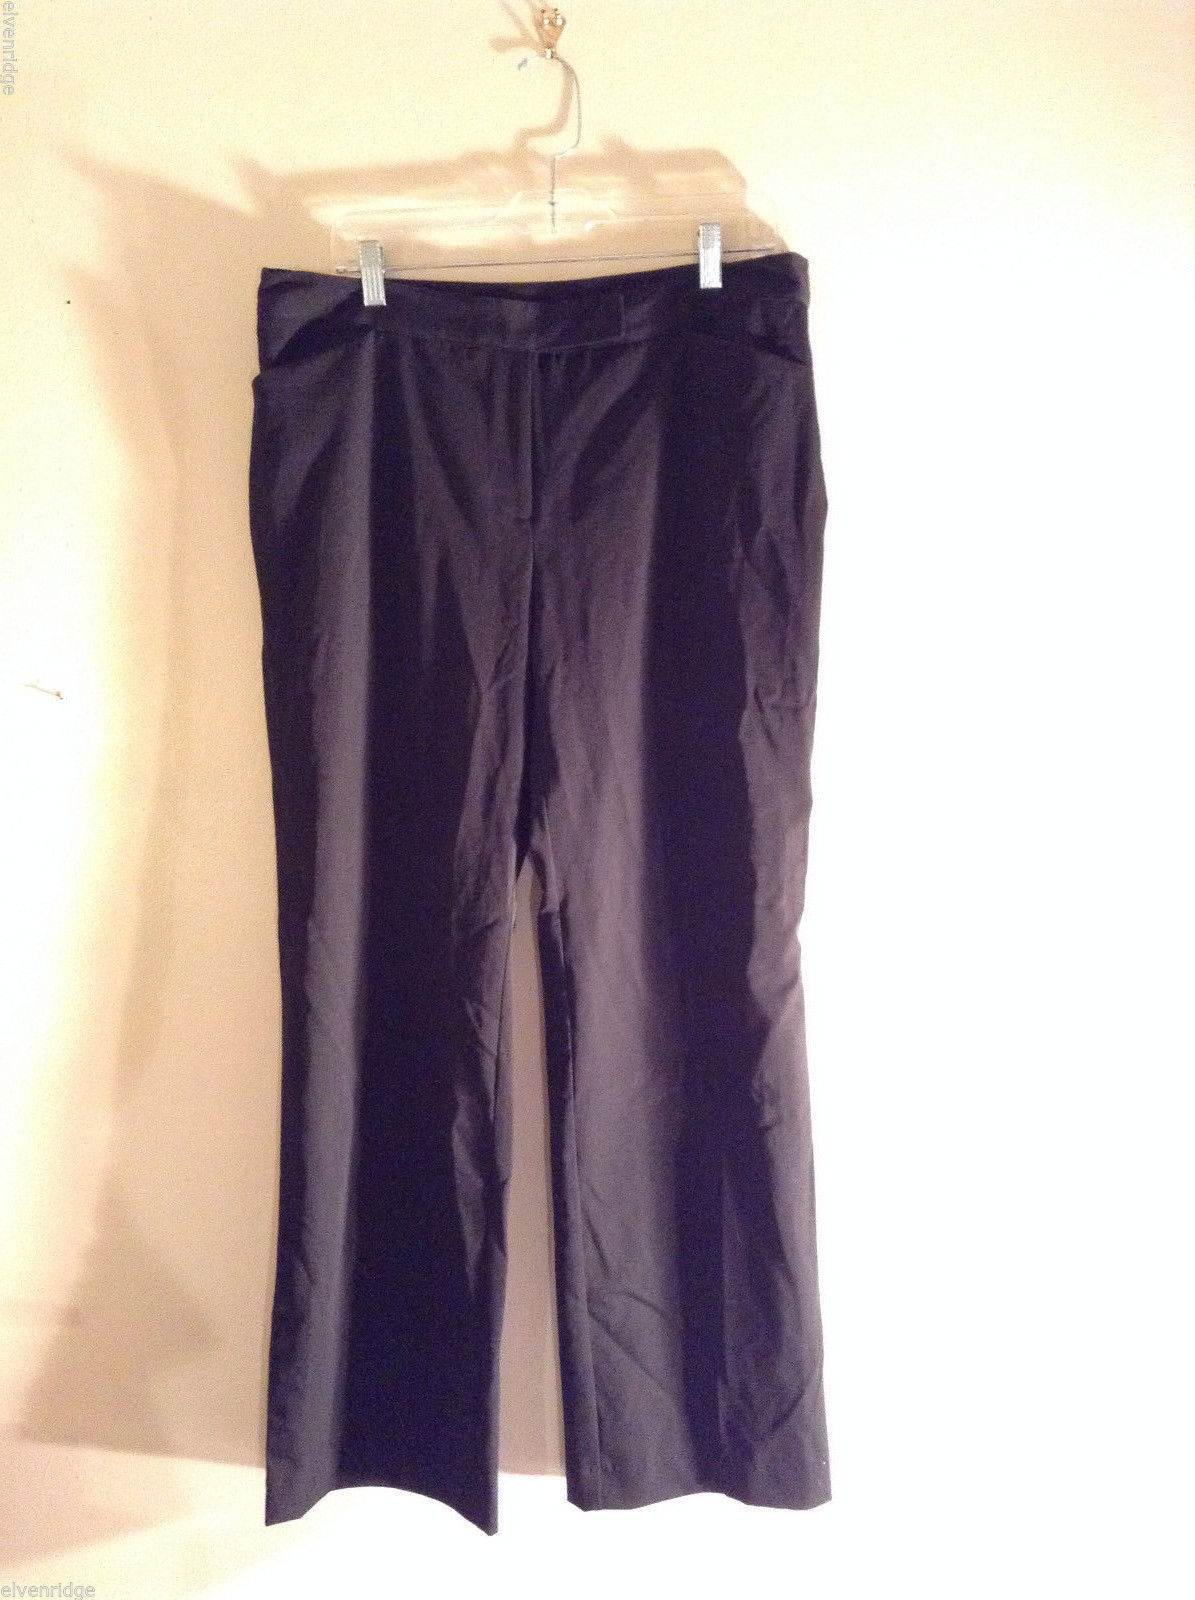 Attention Women's Size 14 Stretchy Fit Straight Leg Black Dress Pants